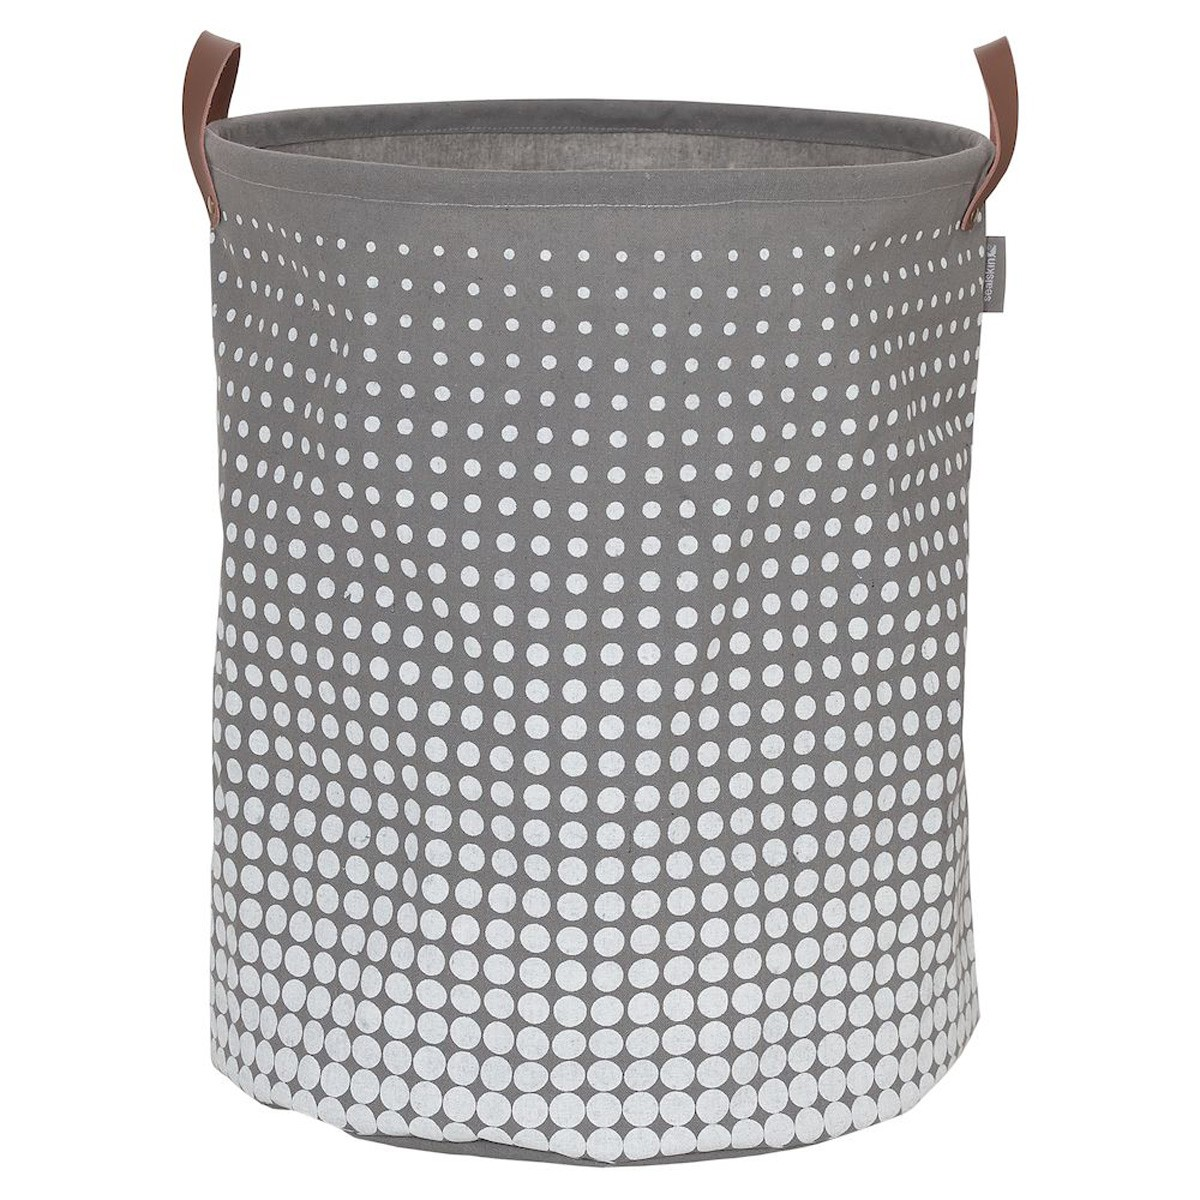 Καλάθι Απλύτων SealSkin Laundry Bag Speckles